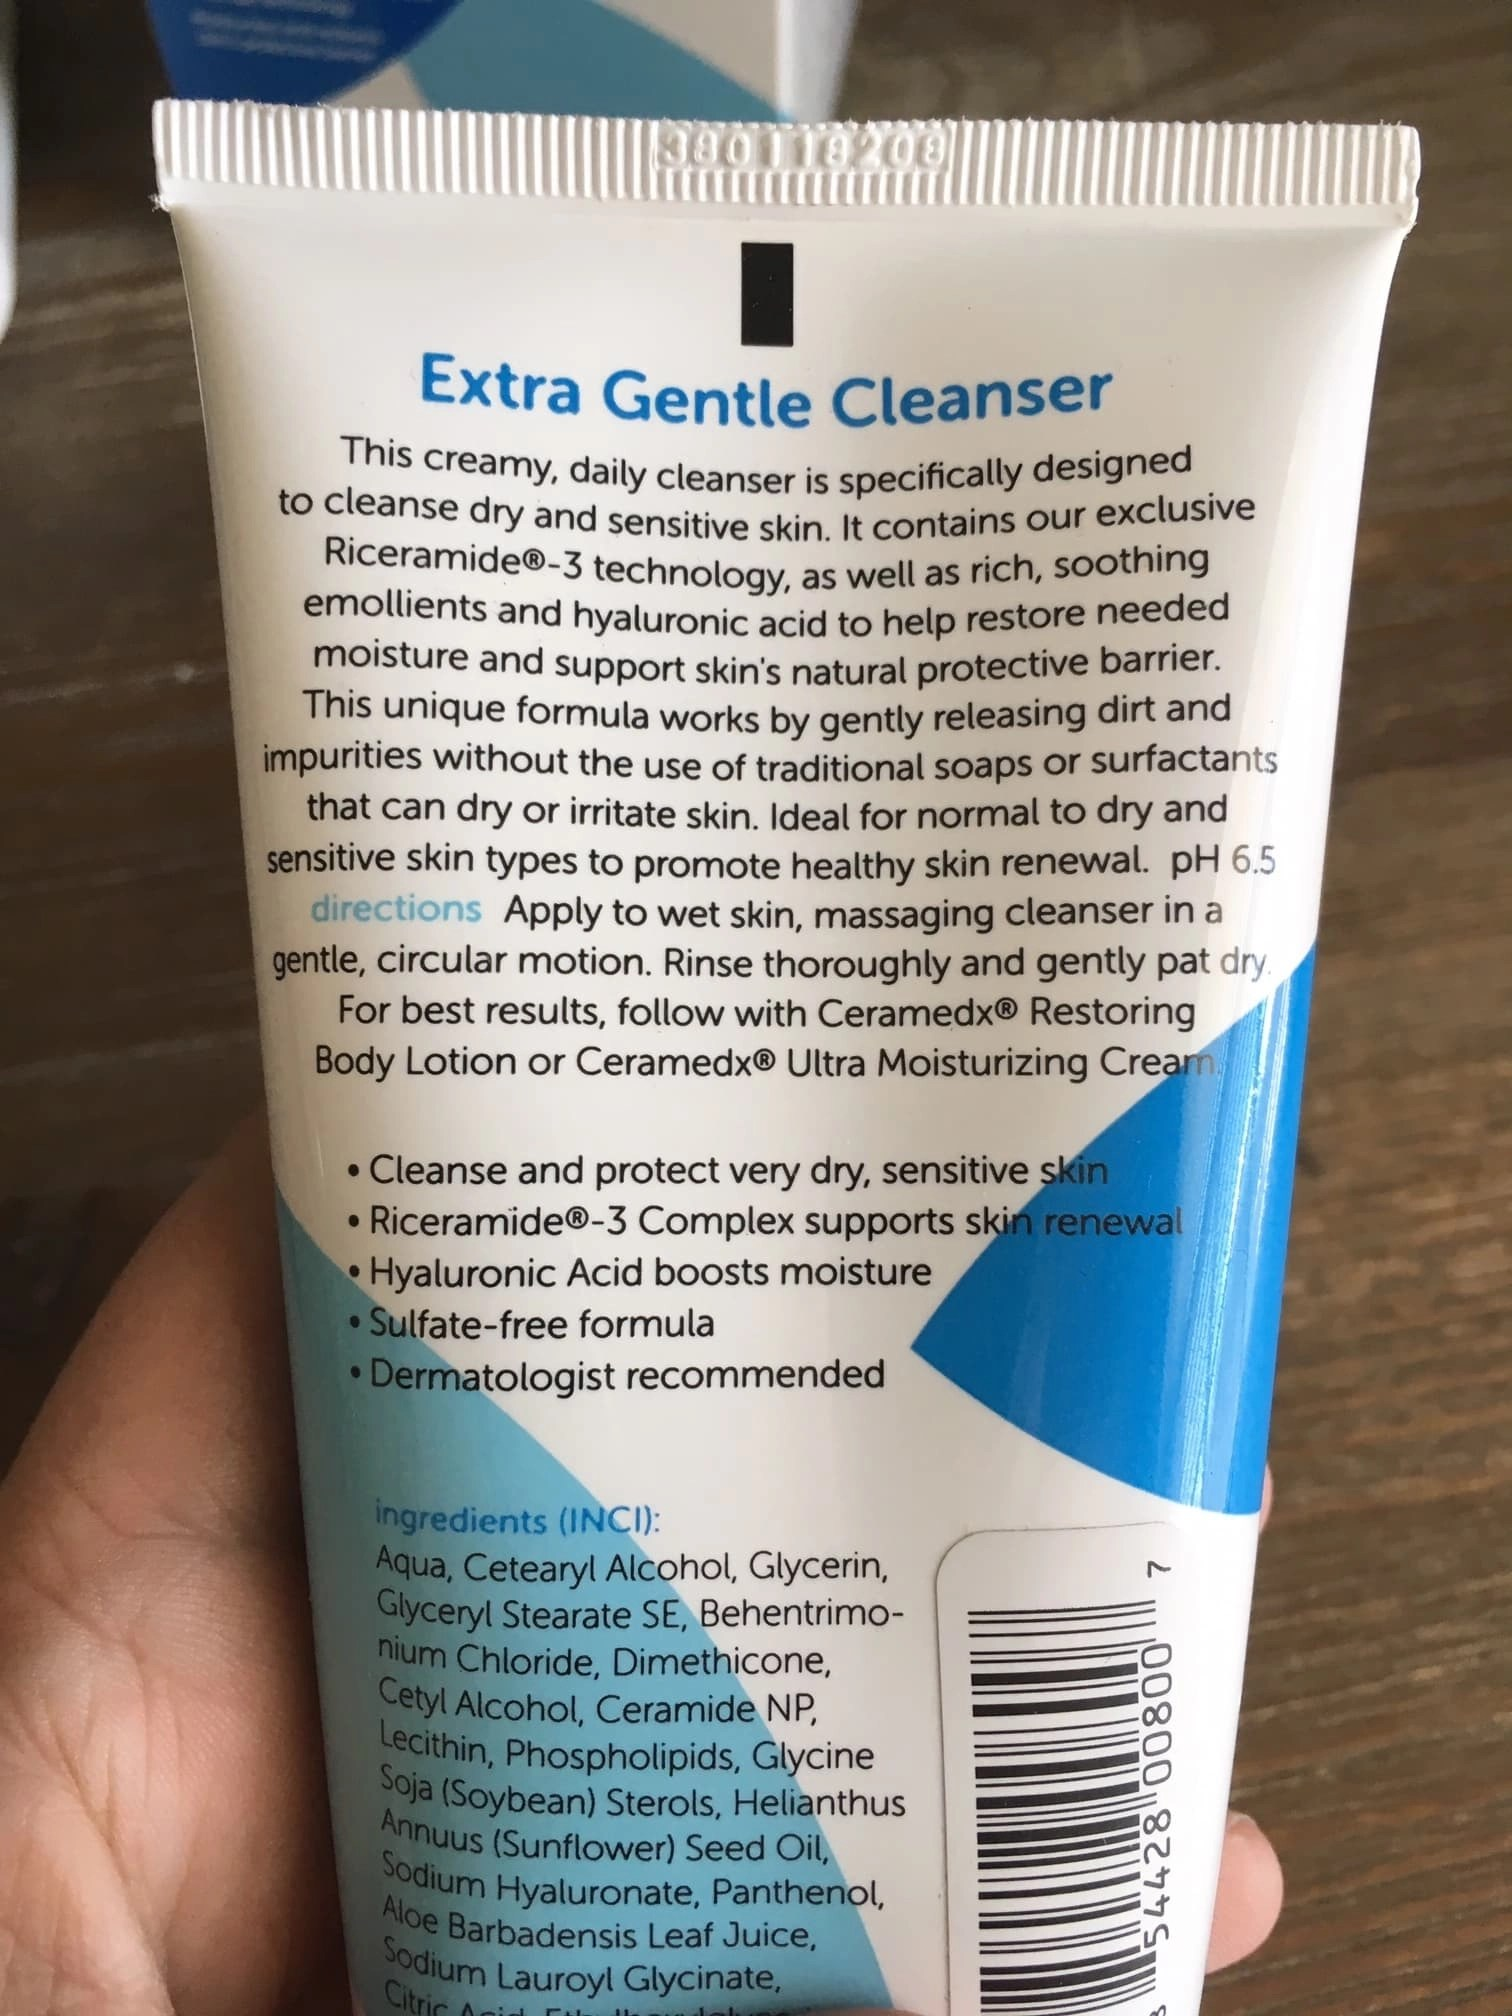 Extra Gentle Cleanser directions and info